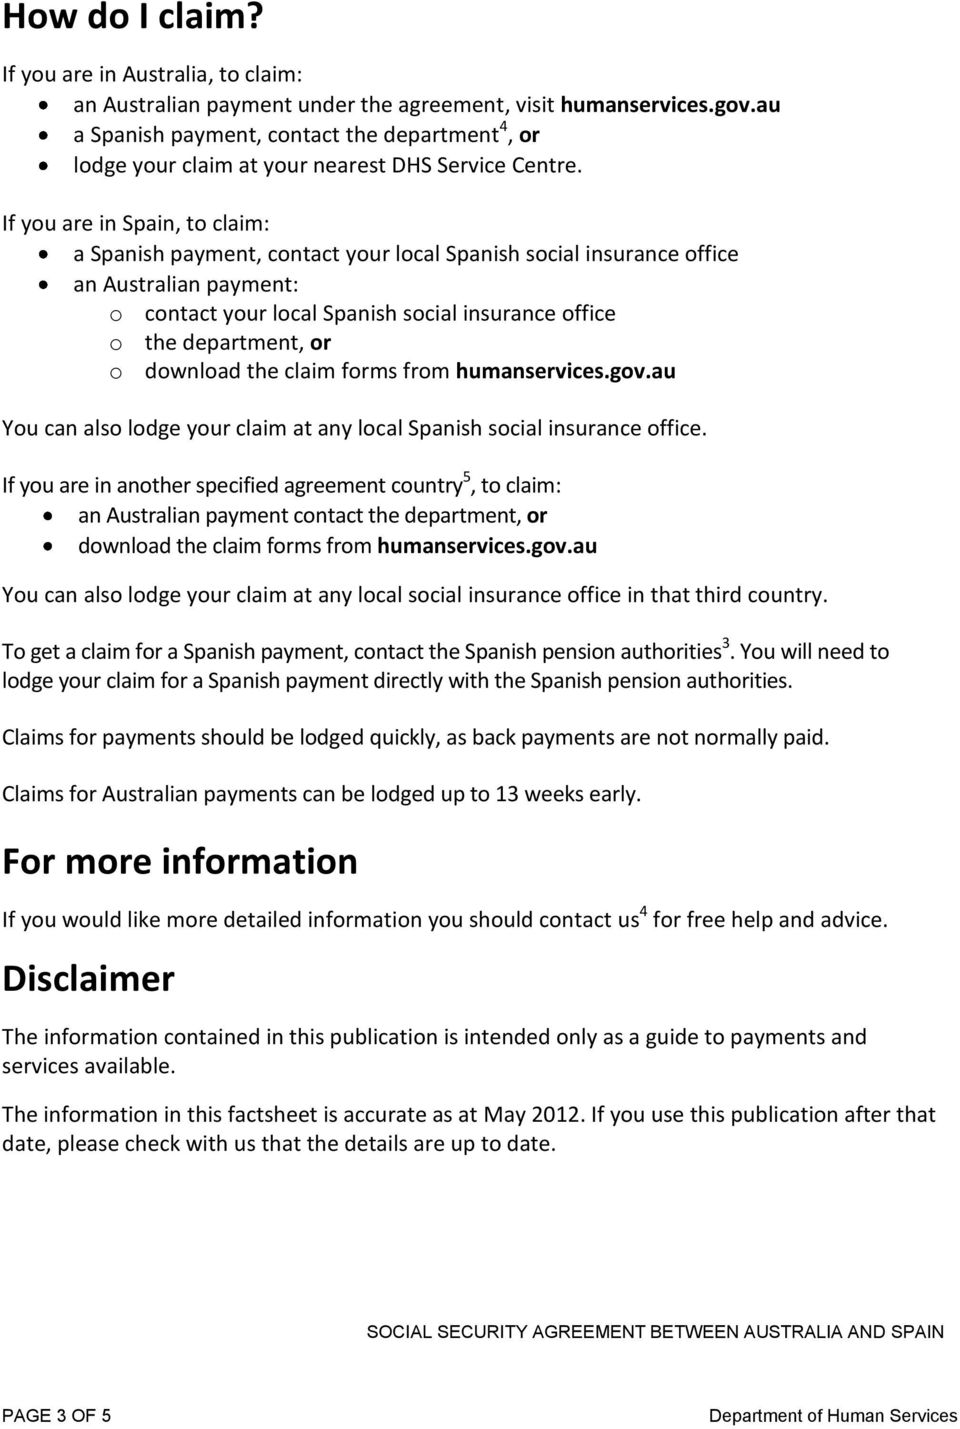 If you are in Spain, to claim: a Spanish payment, contact your local Spanish social insurance office an Australian payment: o contact your local Spanish social insurance office o the department, or o